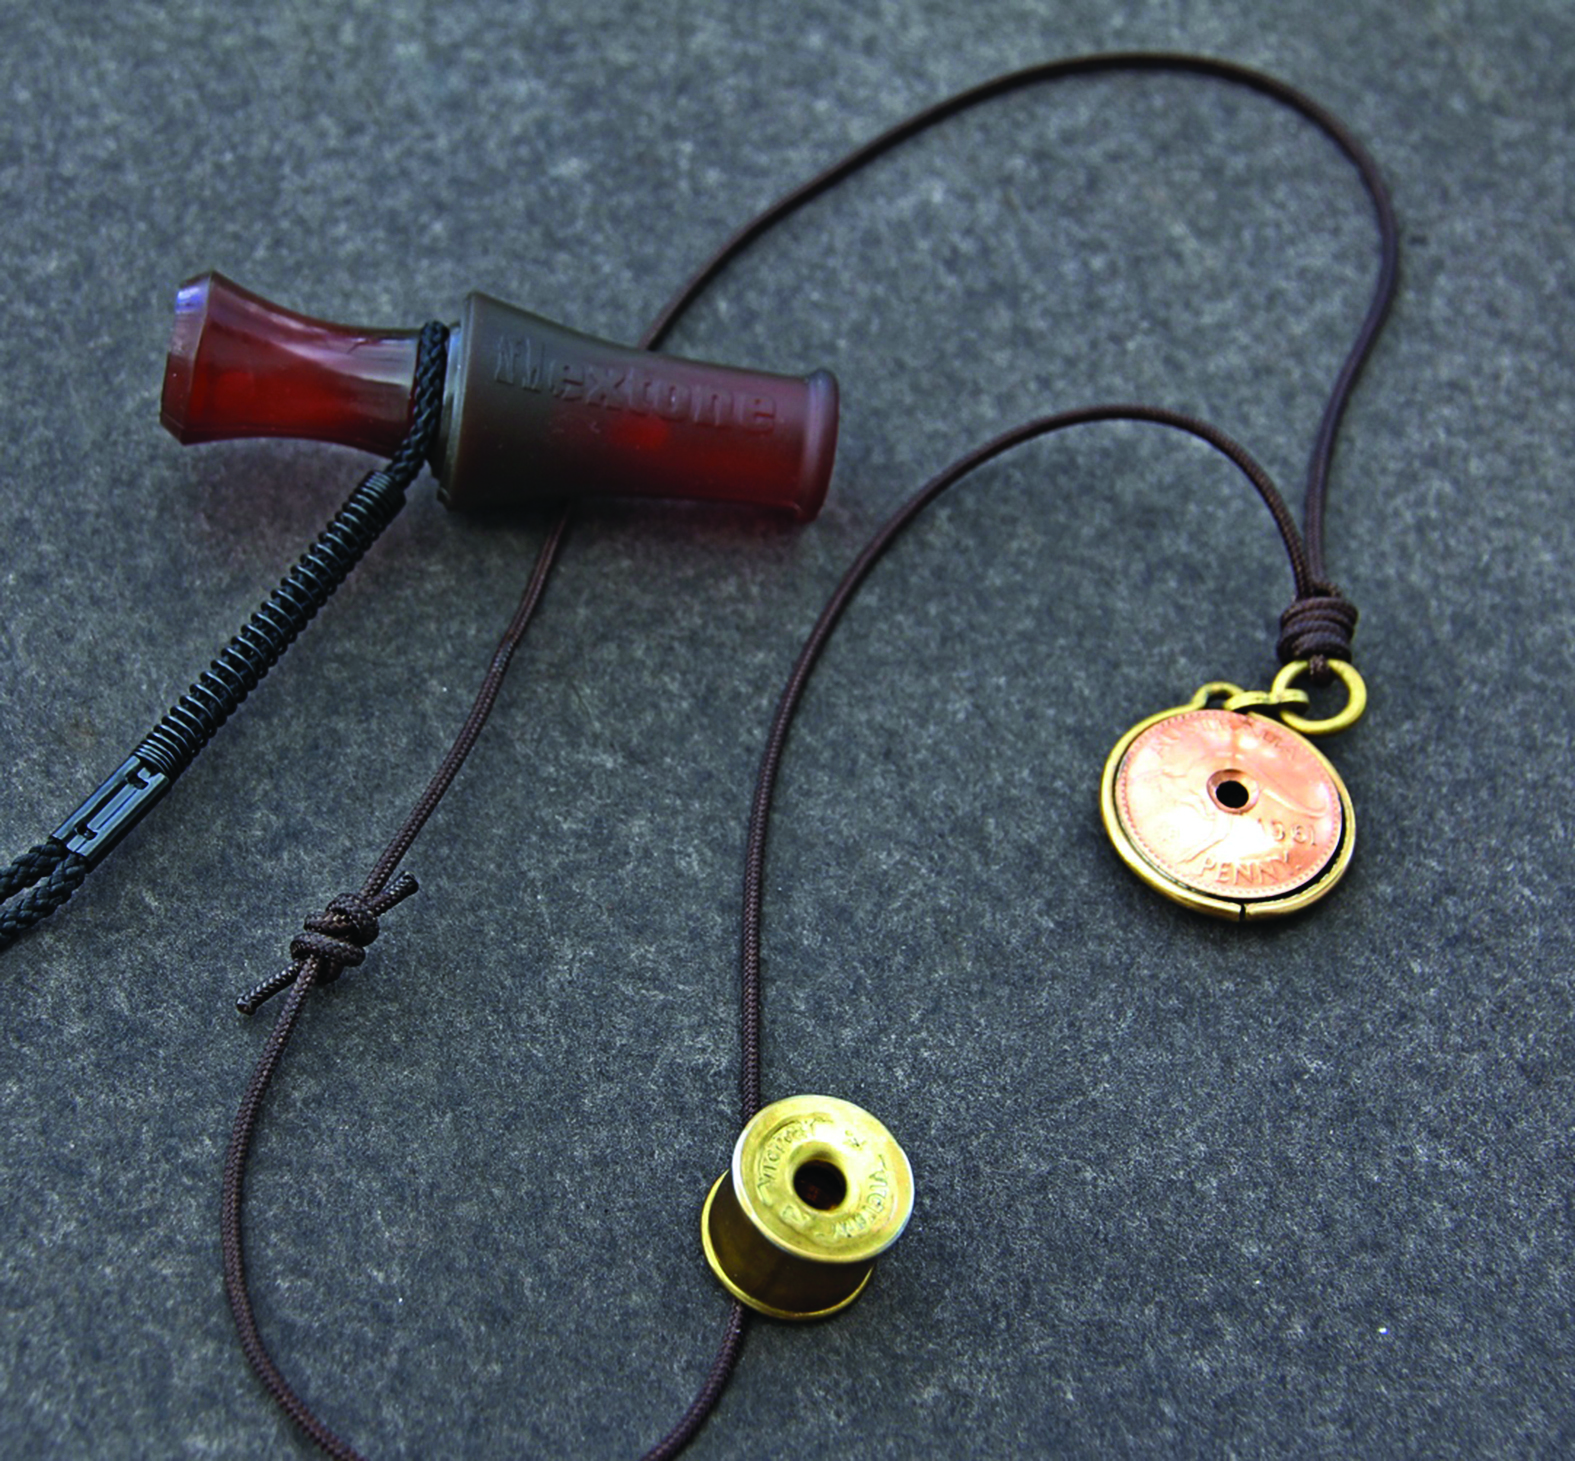 The author's favourite fox whistles. Closest to the camera is a design made from the brass ends of two 12-gauge shotgun shells. The other metal whistle is of a more traditional shape, but was fashioned from two old Australian pennies. The upper whistle is a Flextone Dying Rabbit call made of rubber and plastic. It doesn't produce the same high-pitched squeak of most fox whistles but does bring them in.